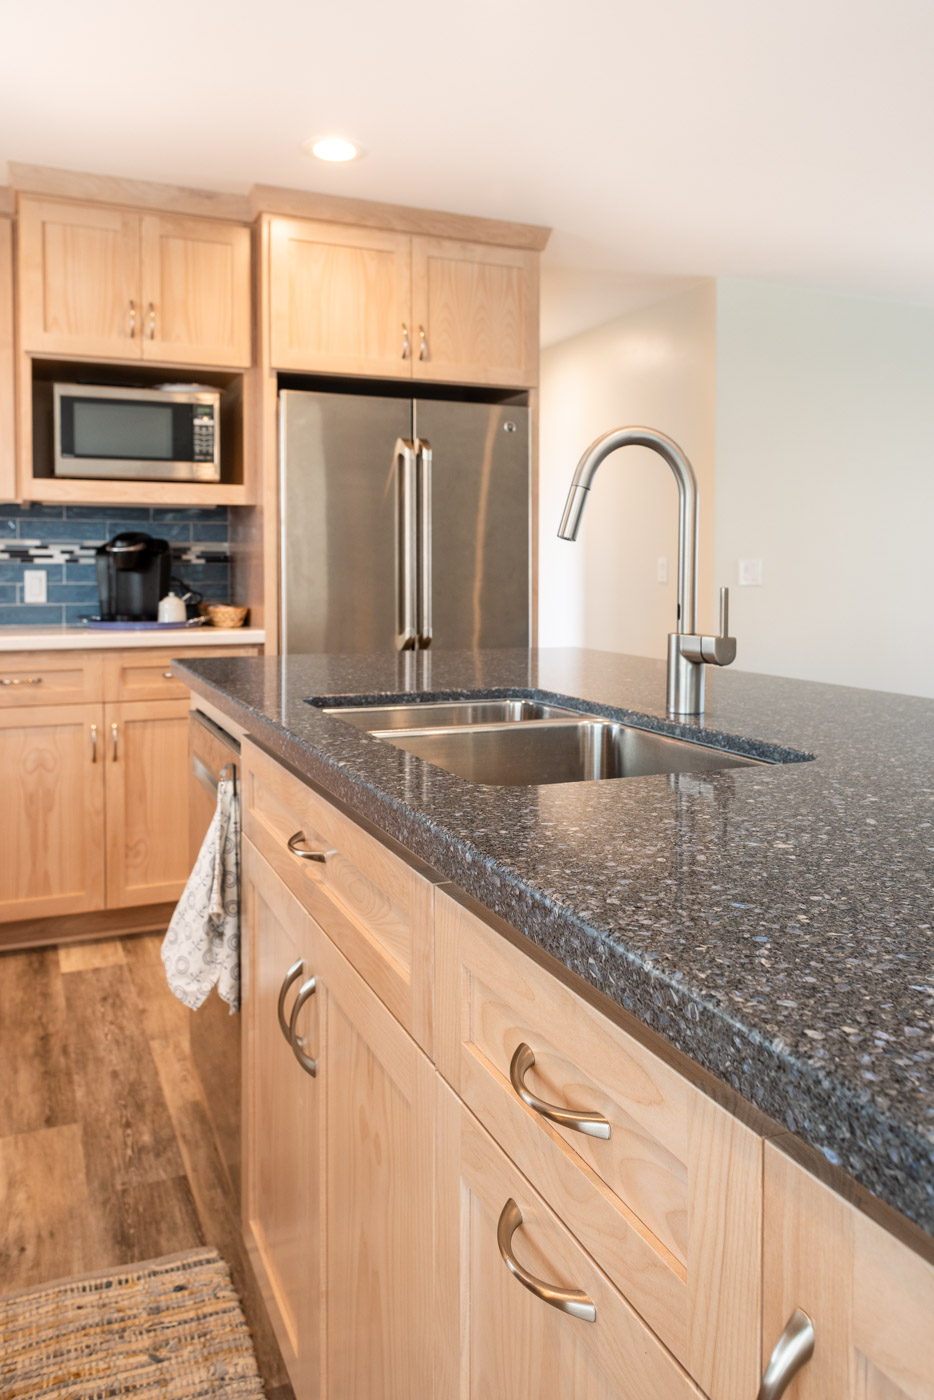 Coastal Contemporary custom kitchen cabinets with natural wood stain and kitchen island sink